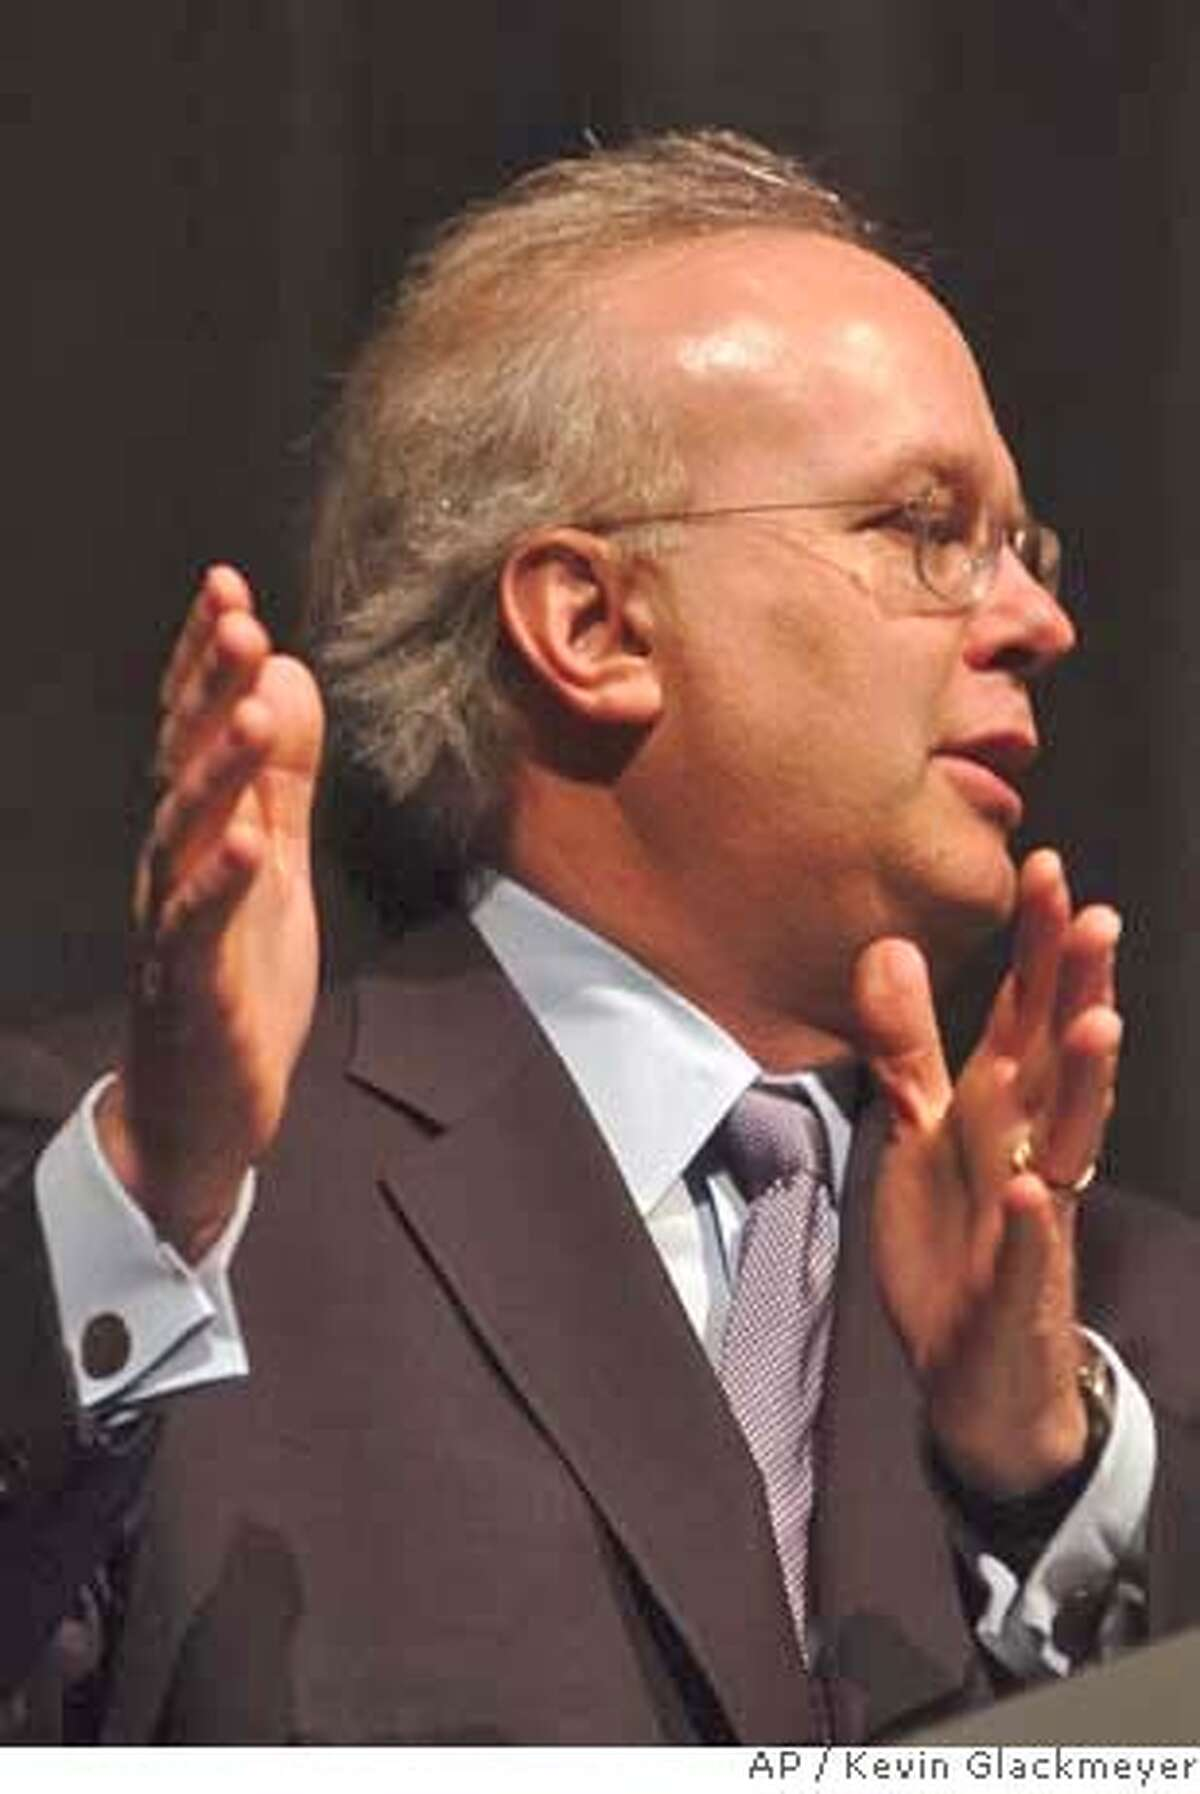 House deputy chief of staff Karl Rove speaks to journalism students, Thursday, March 15, 2007 in Troy, Ala., at a symposium on the campus of Troy University. Rove spoke about media coverage of presidents, politicians and it's effects throughout our history. (AP Photo/Kevin Glackmeyer)